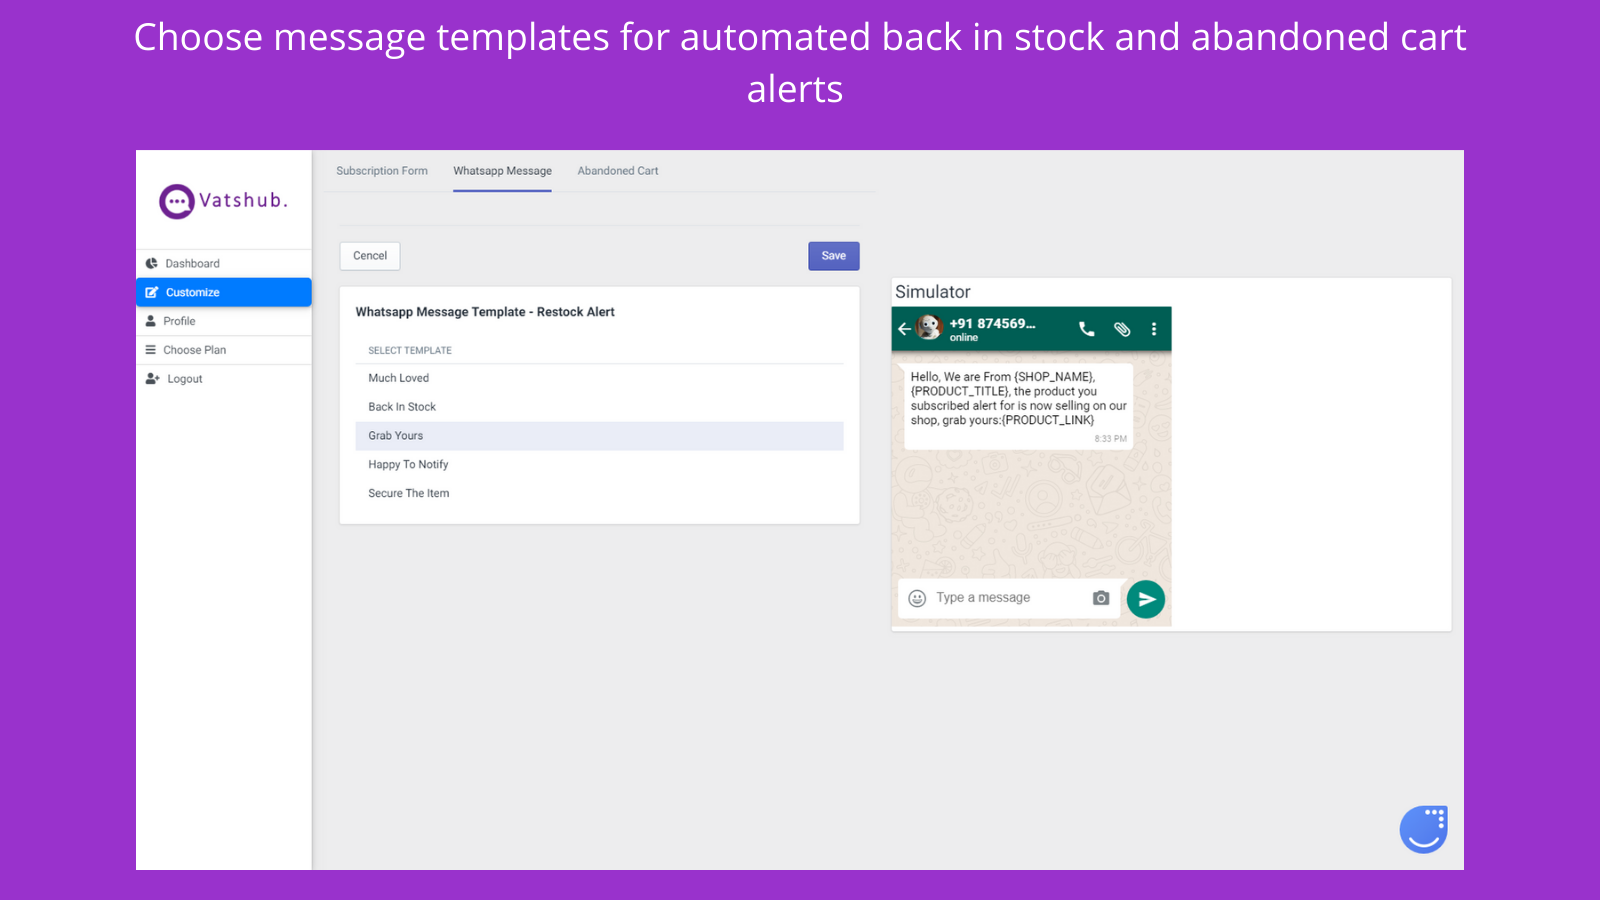 Choose message templates for automated alerts